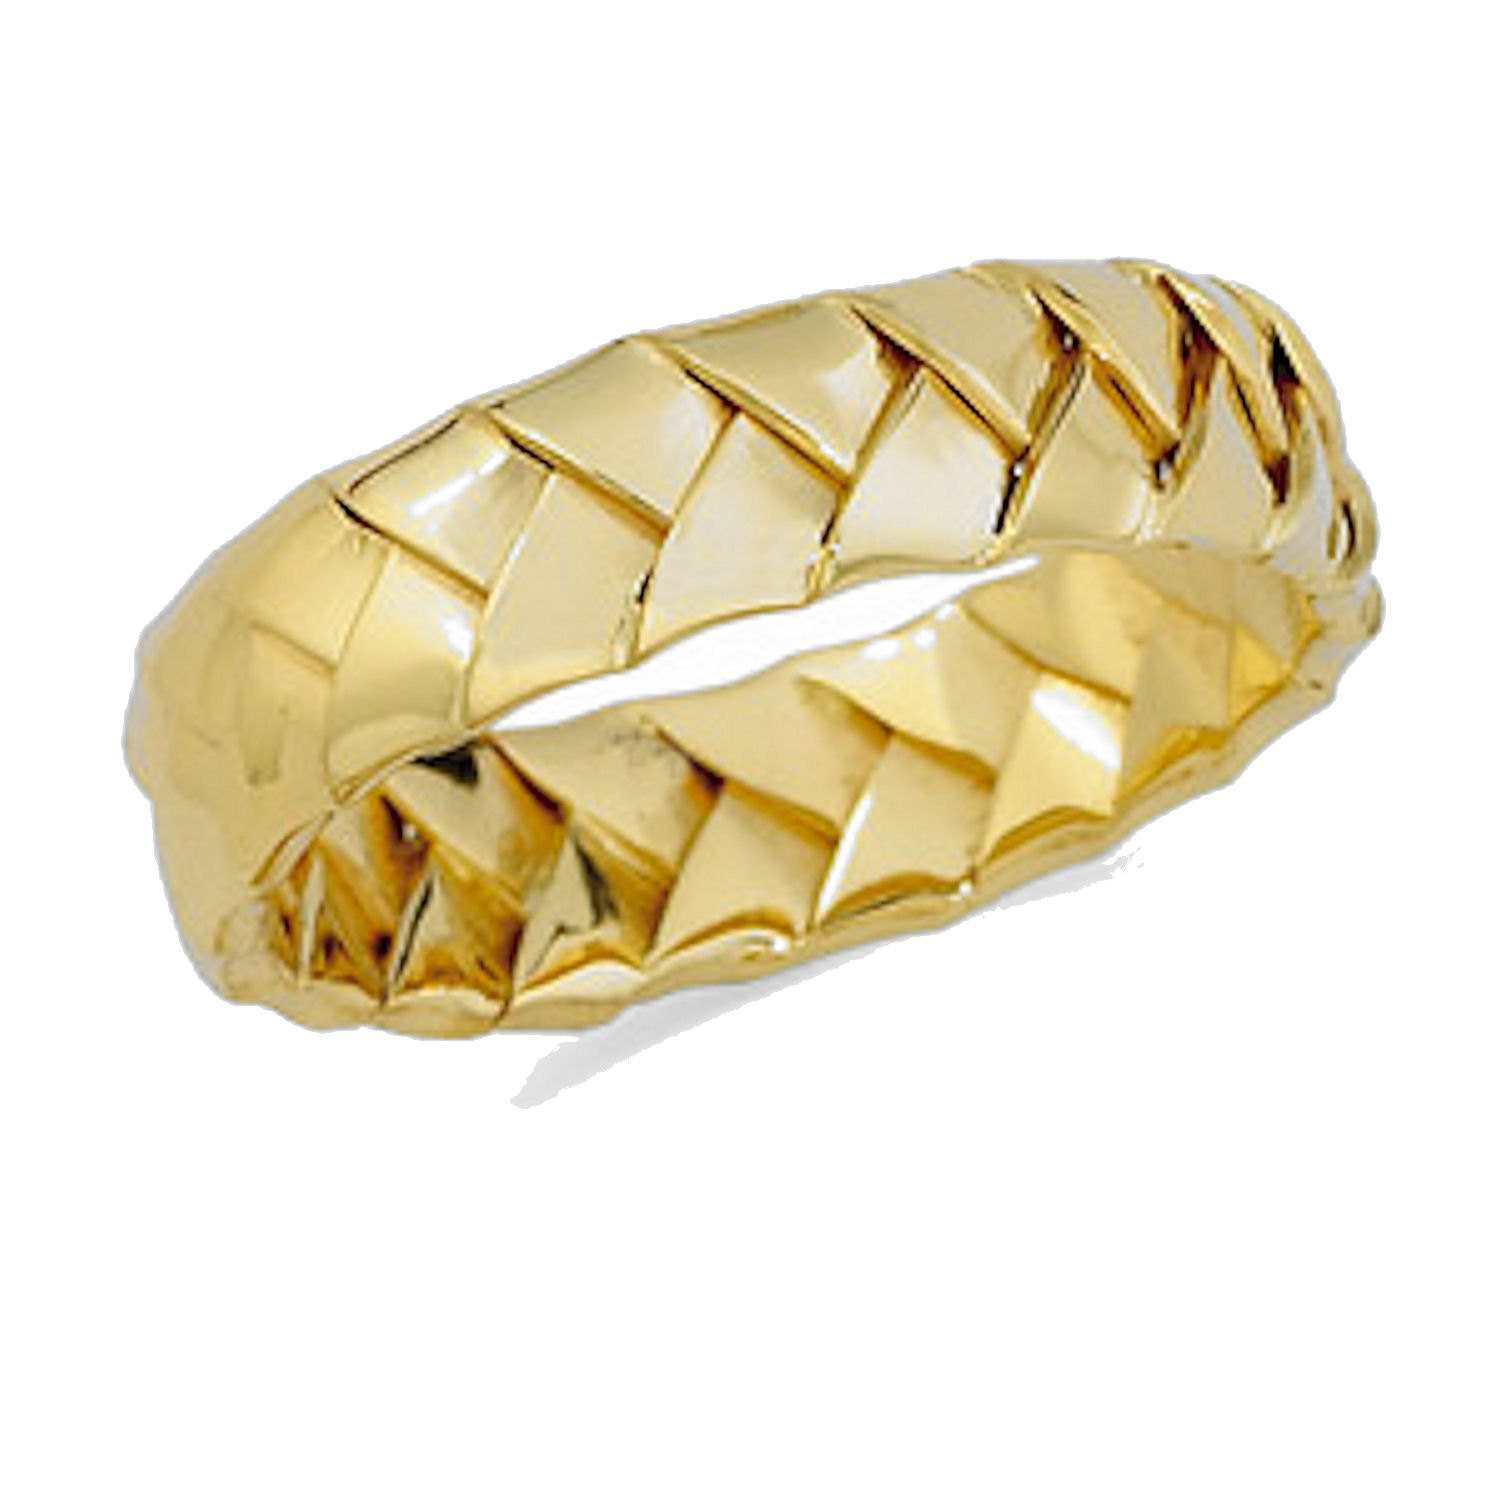 Gold Handwoven Wedding Bands By HershalWiggins On Etsy